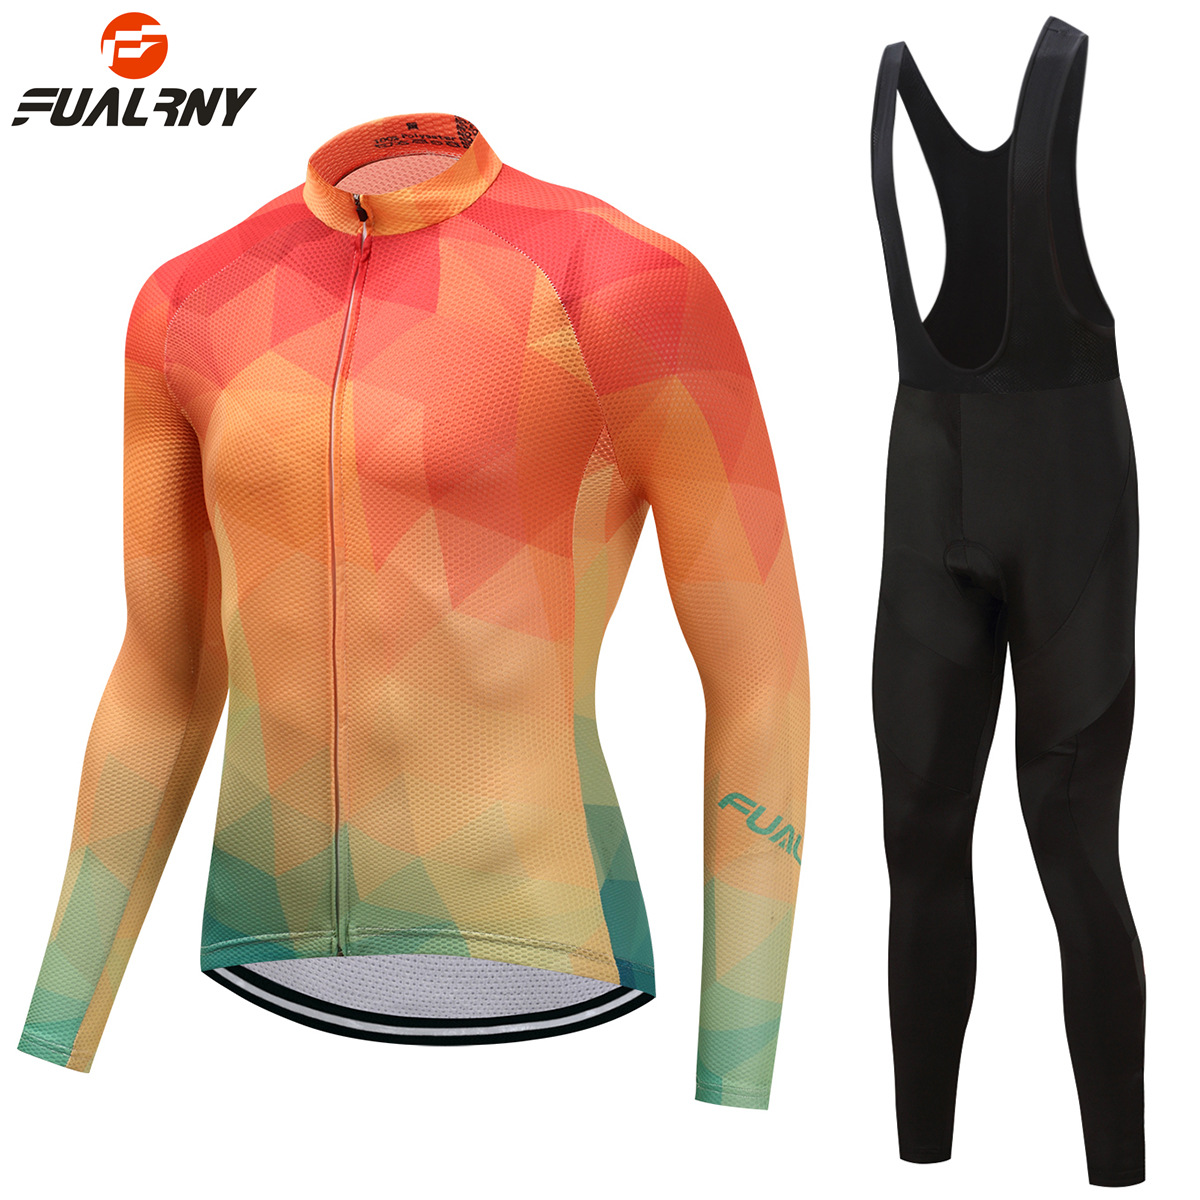 FUALRNY Men Women Long Sleeve Breathable/Fleece Cycling Jersey Set MTB Bicycle Clothing Maillot Ropa Ciclismo MTB Bike Clothes